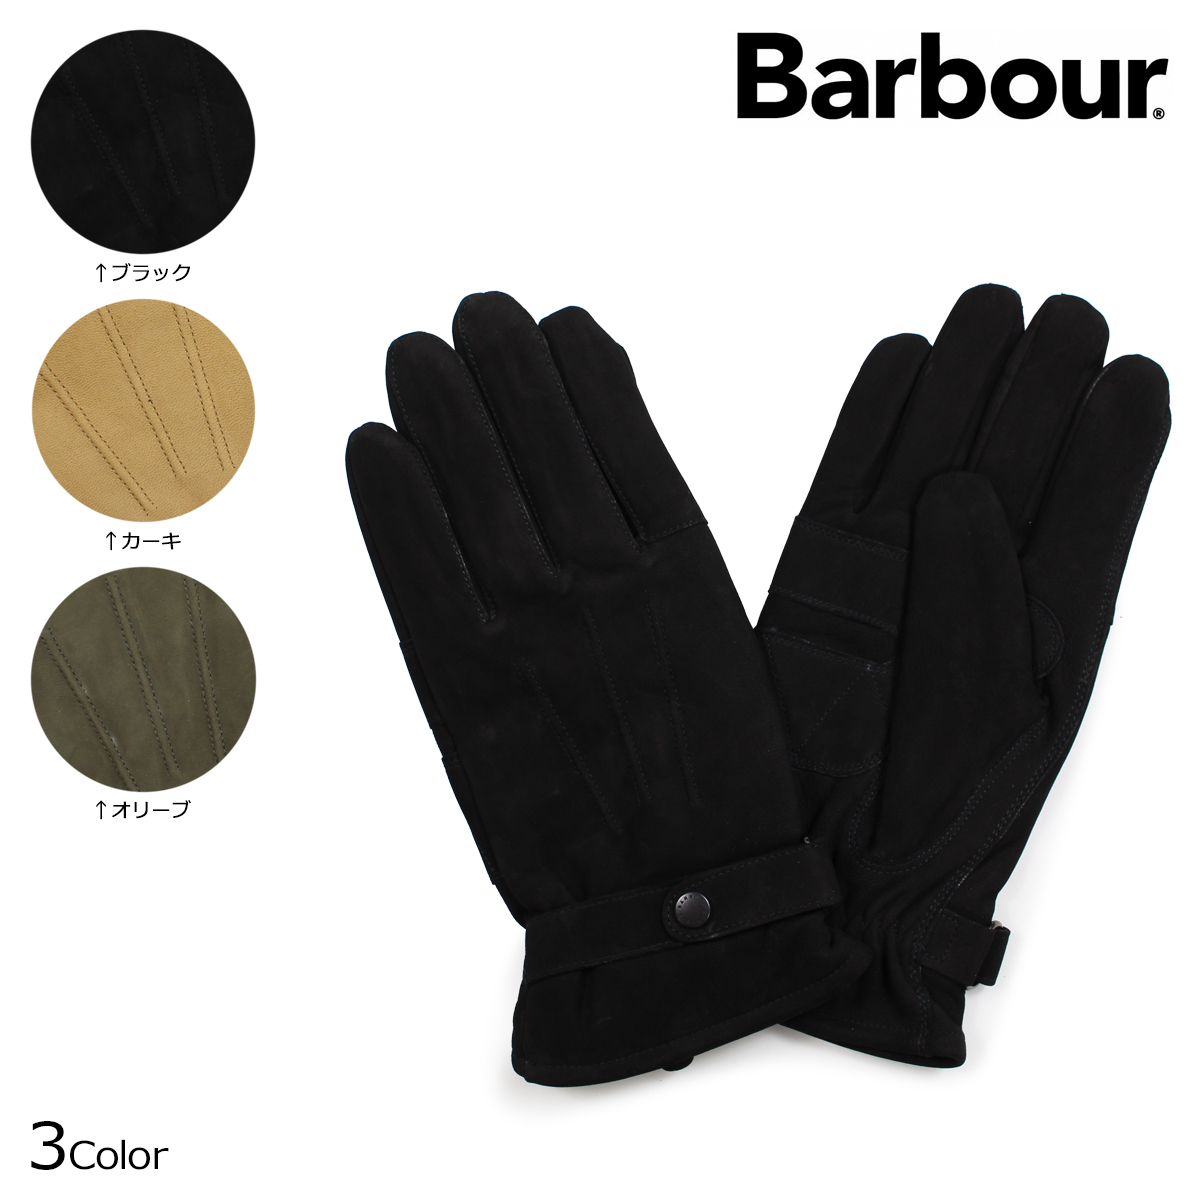 Barbour LEATHER THINSULATE GLOVE バブアー 手袋 グローブ メンズ レザー シャンパン MGL0007